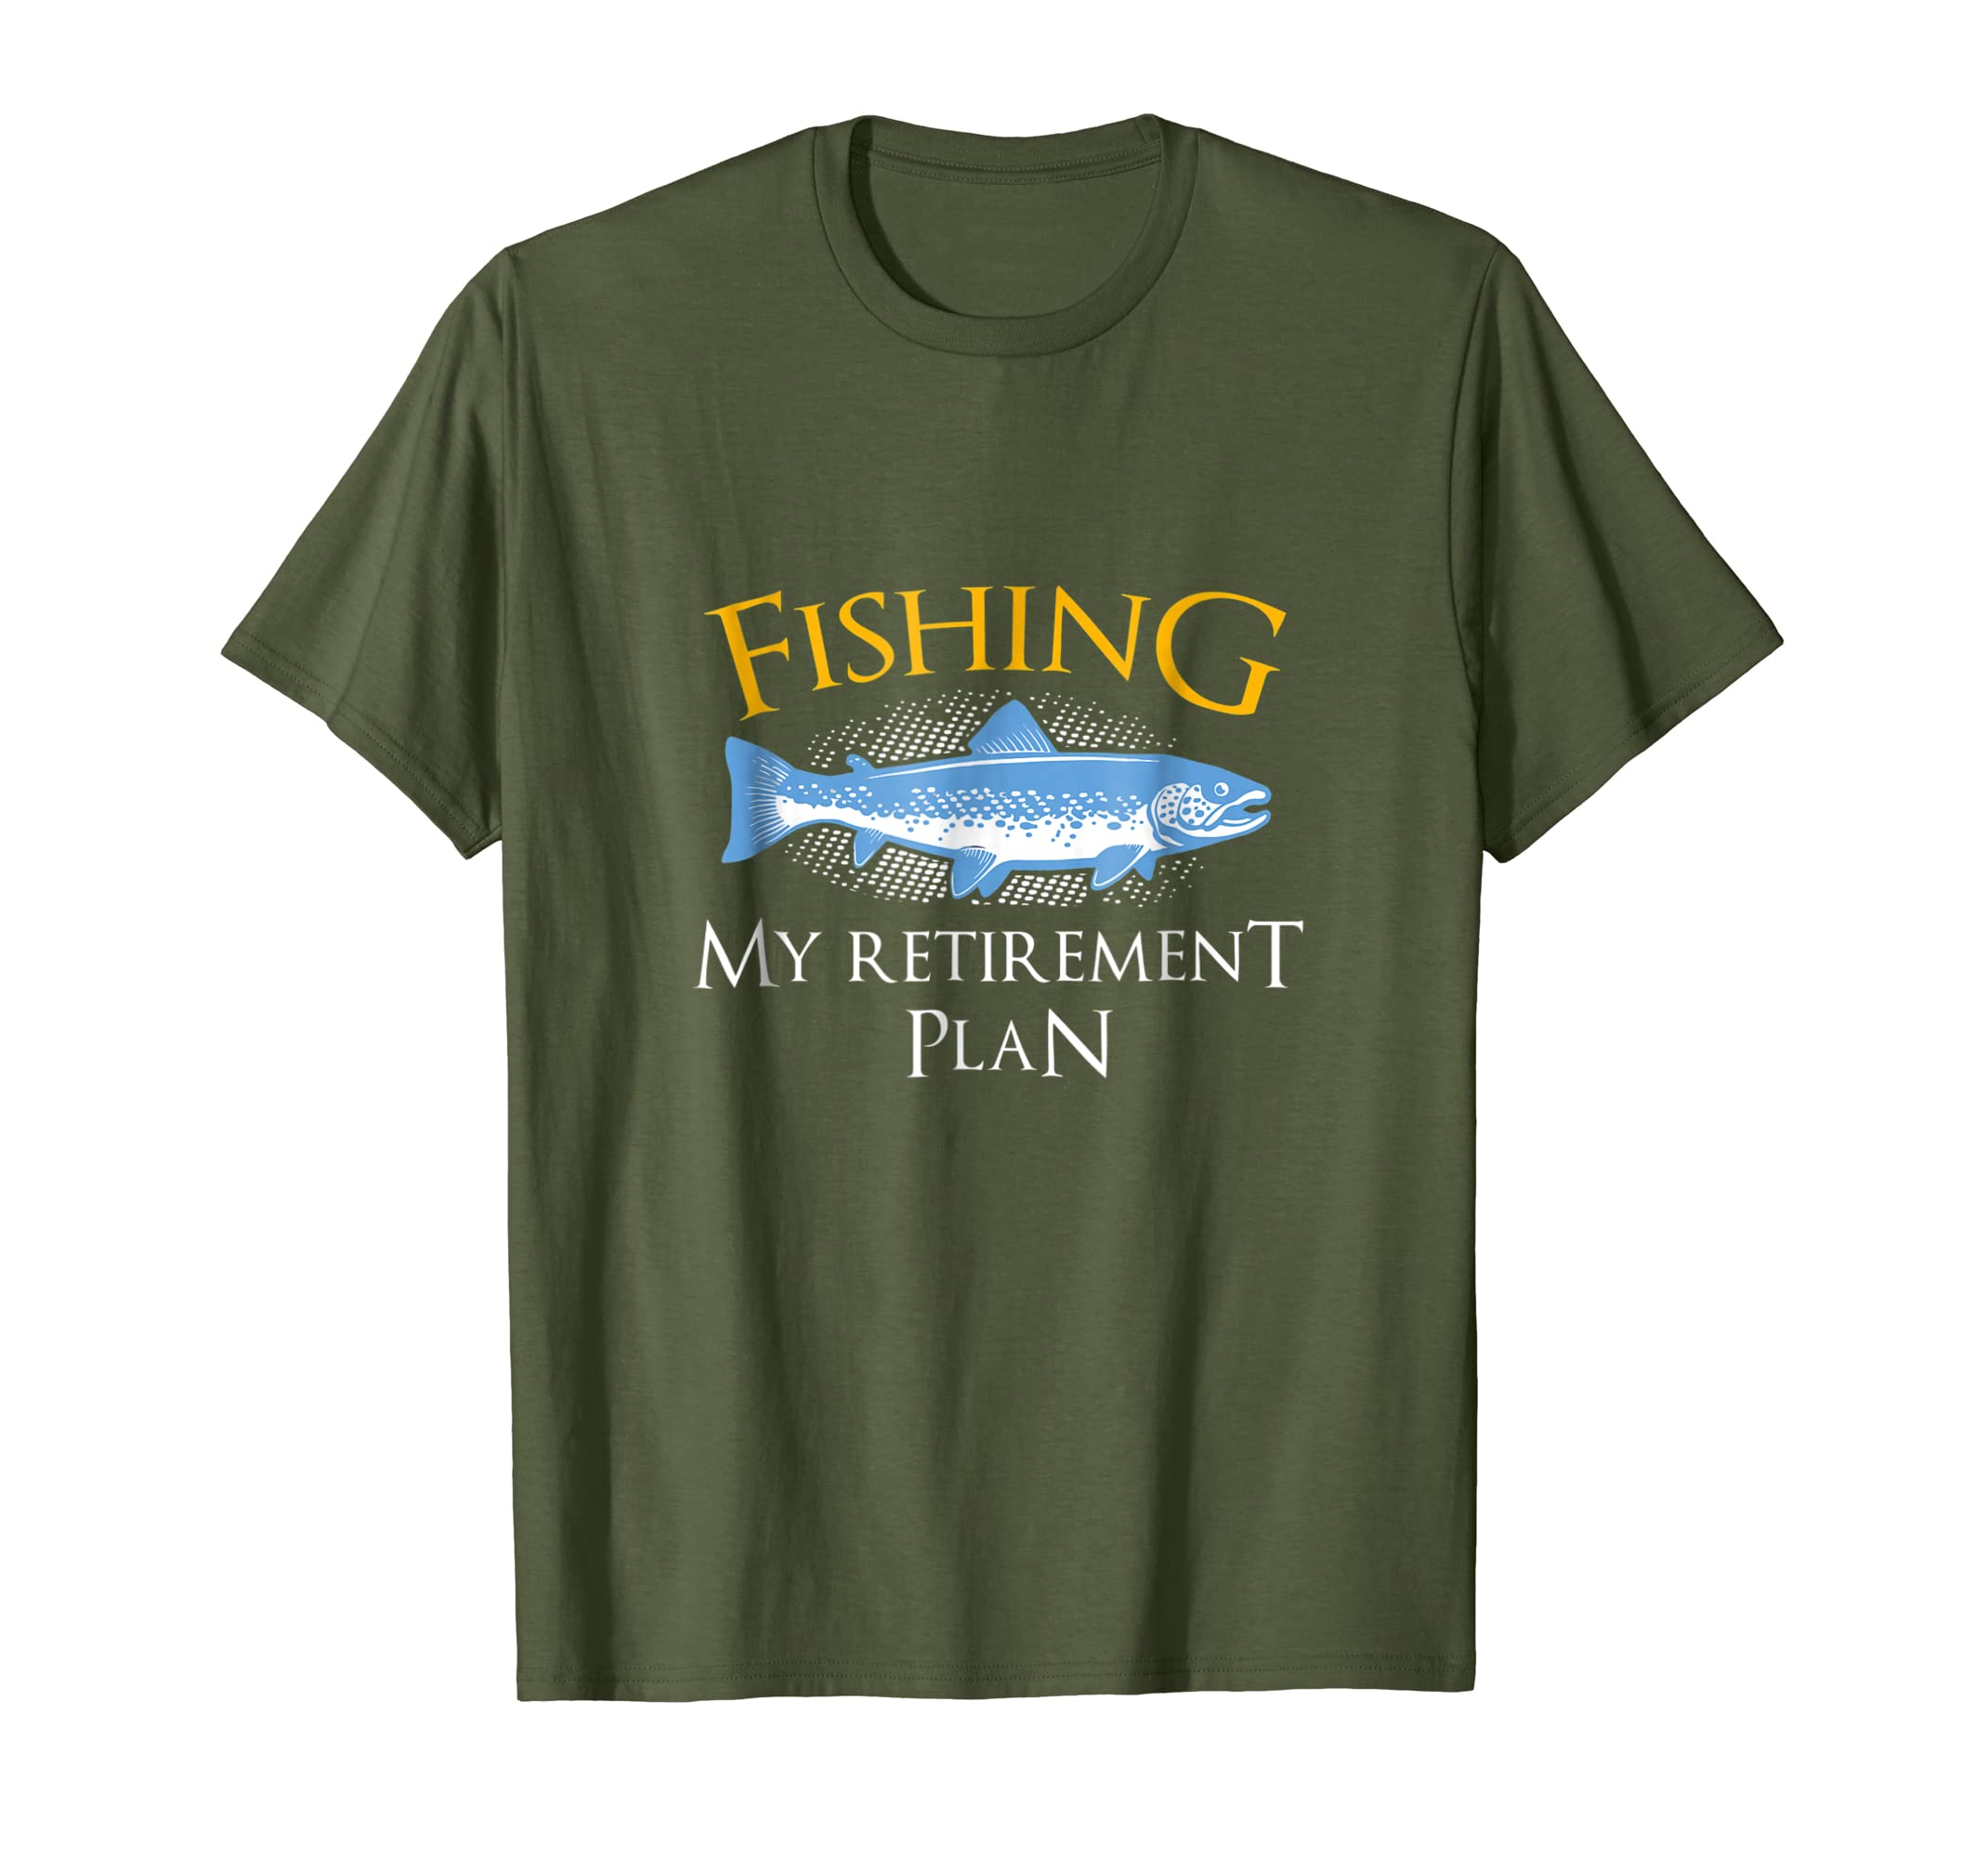 652ea93f Amazon.com: Fishing My Retirement Plan Fishing T-Shirt Men Women Shirt:  Clothing